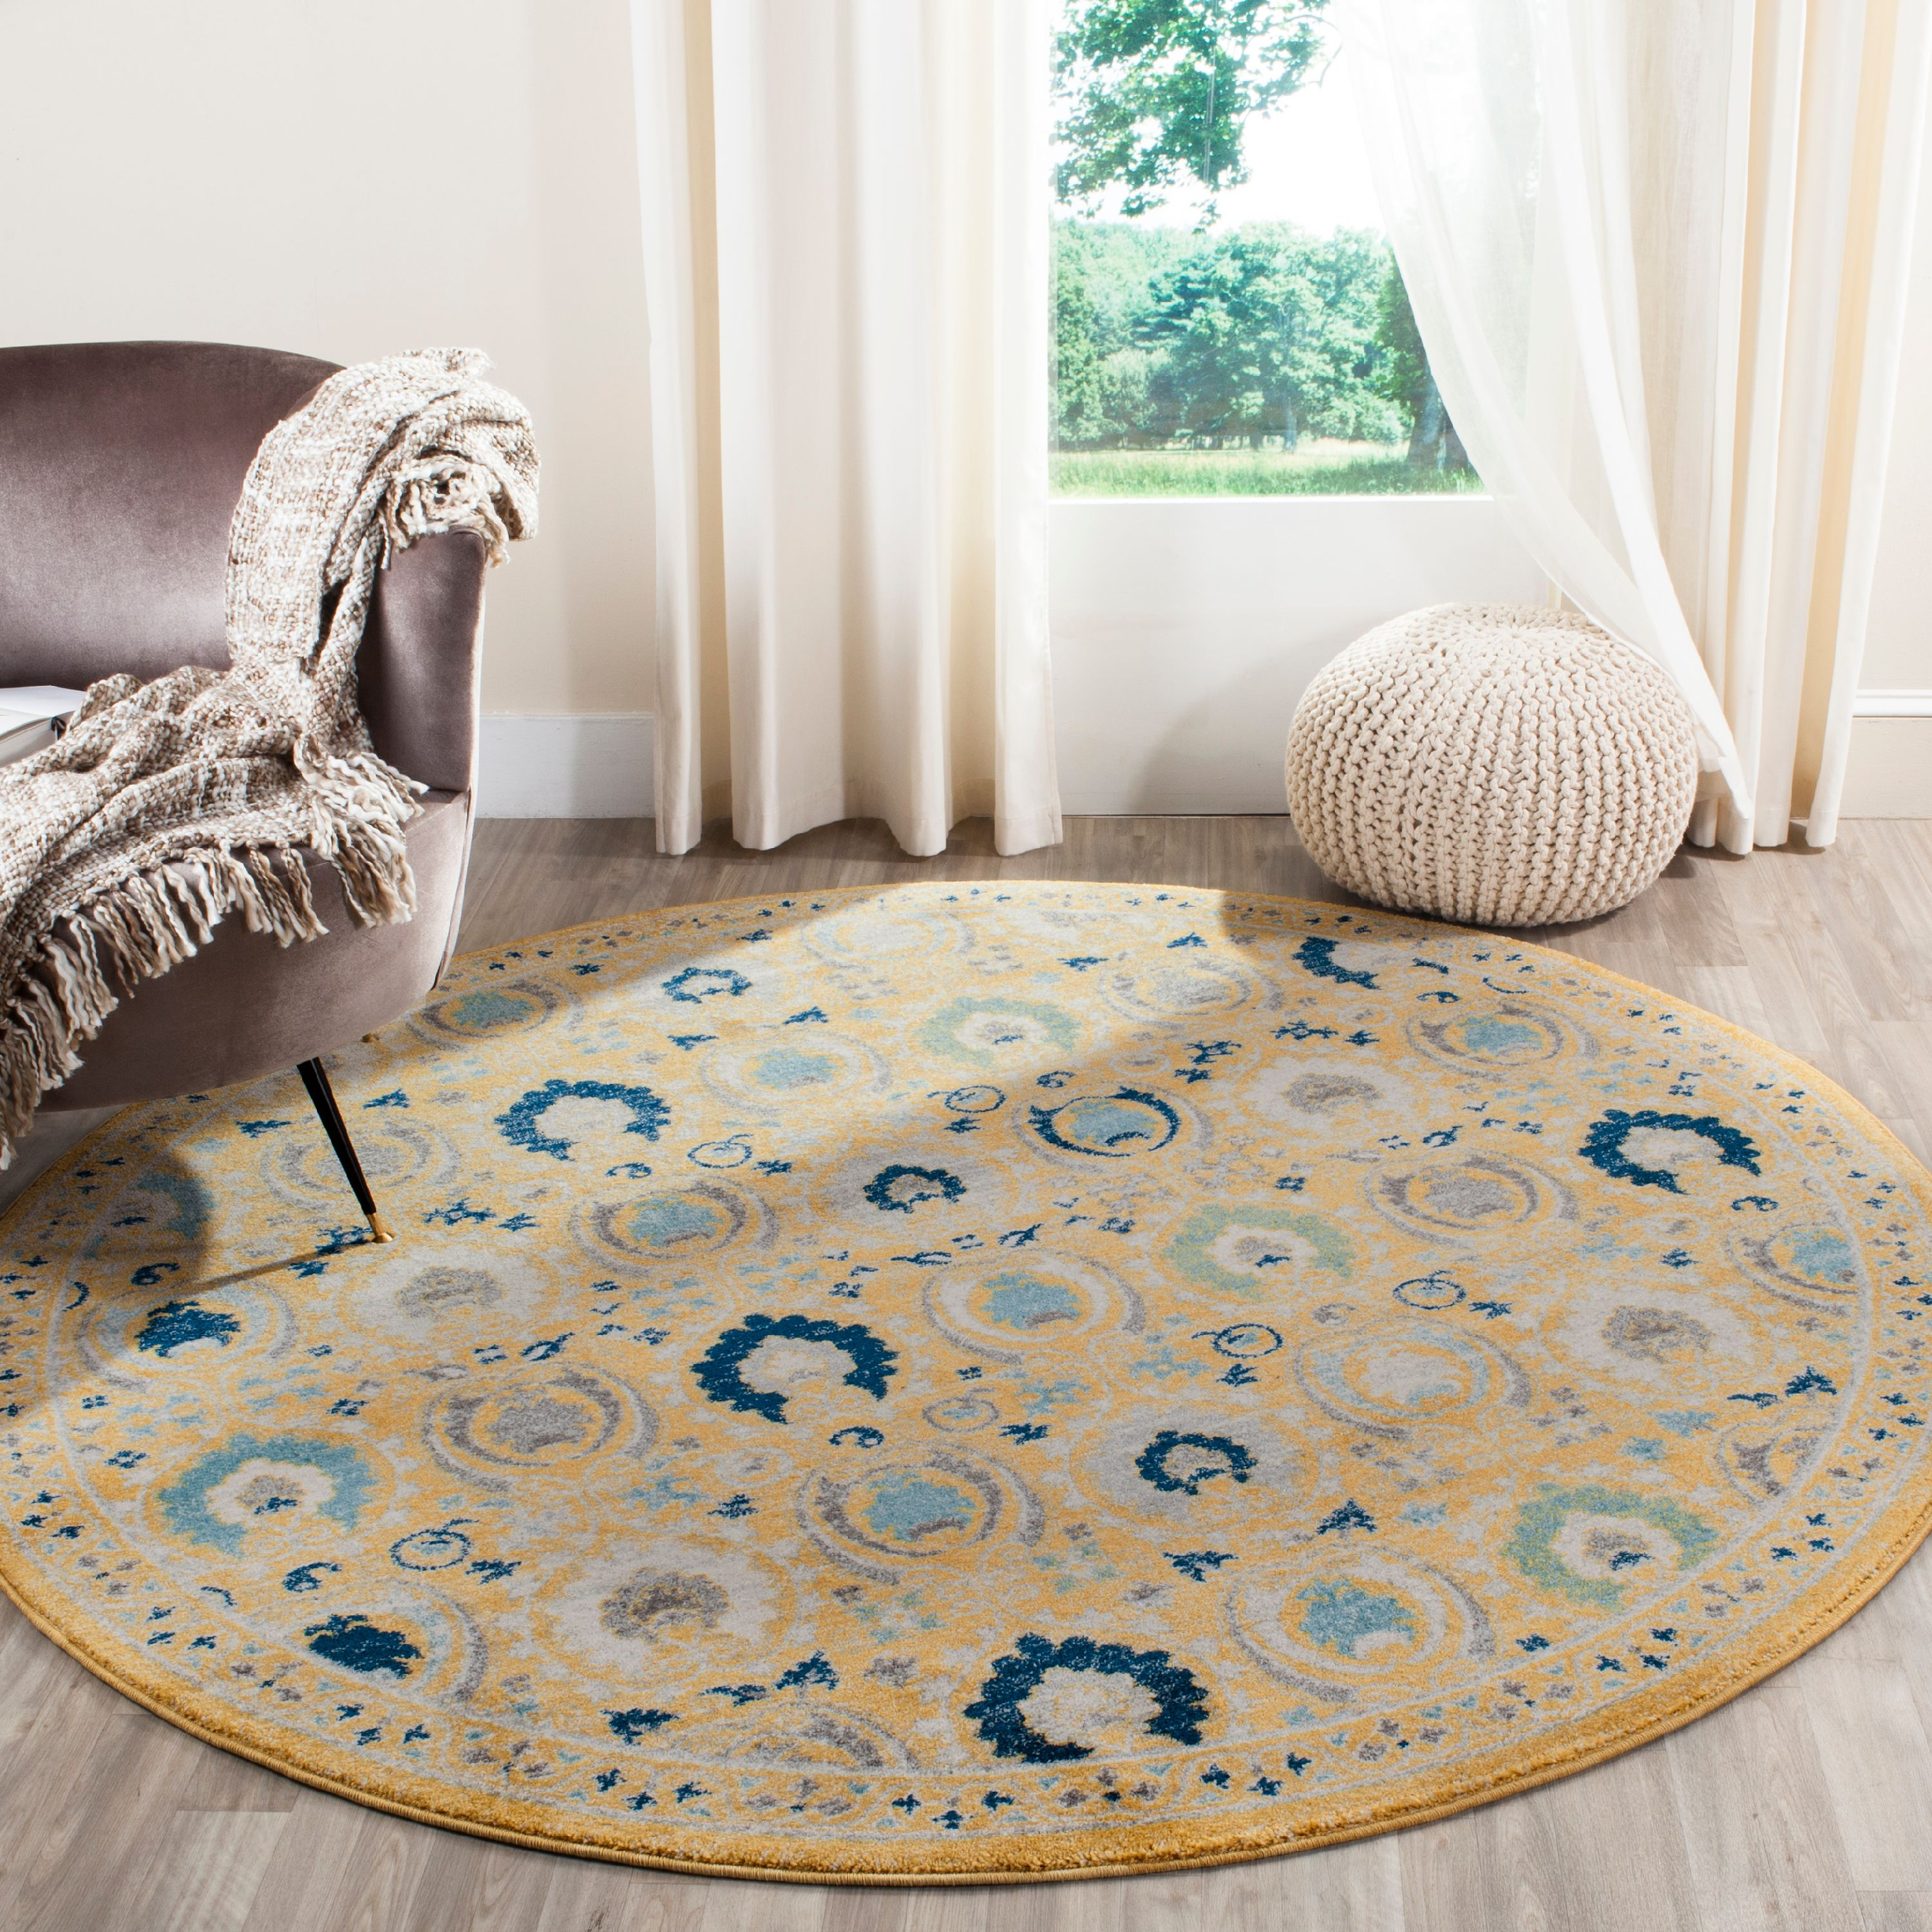 Safavieh Evoke Milica Traditional Area Rug